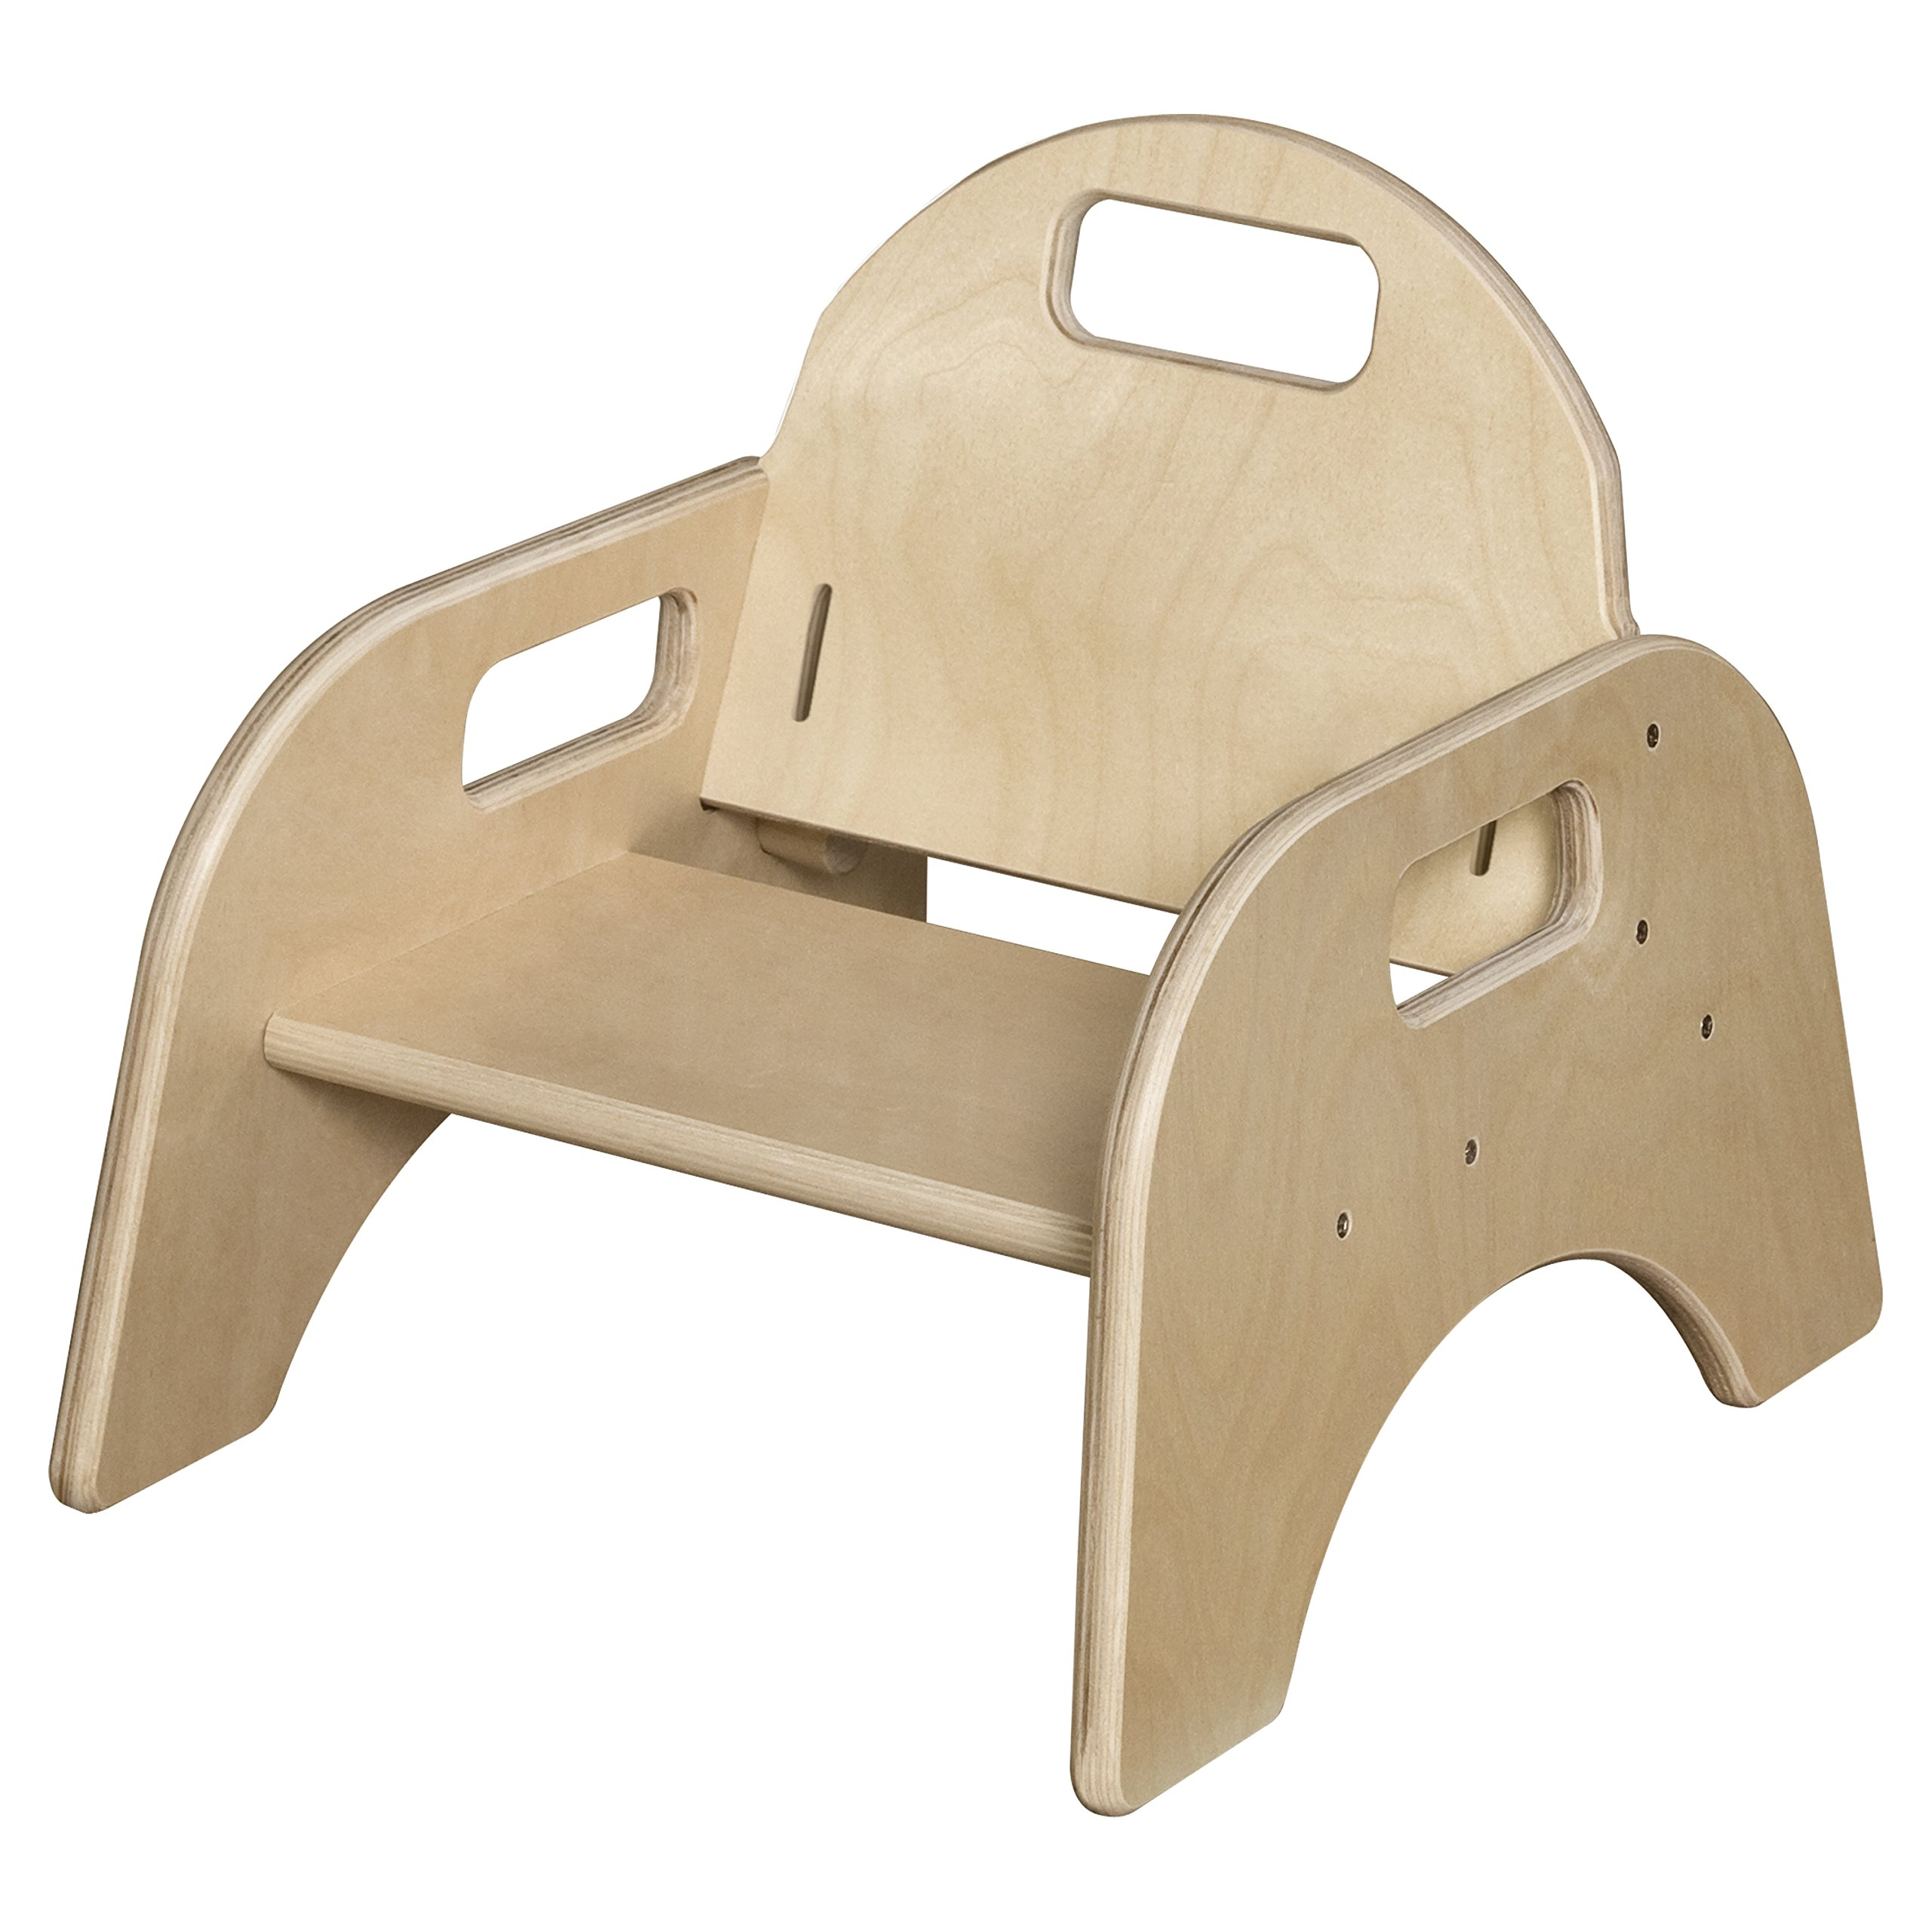 Wood Designs Stackable Woodie Toddler Chair, 5'' High Seat